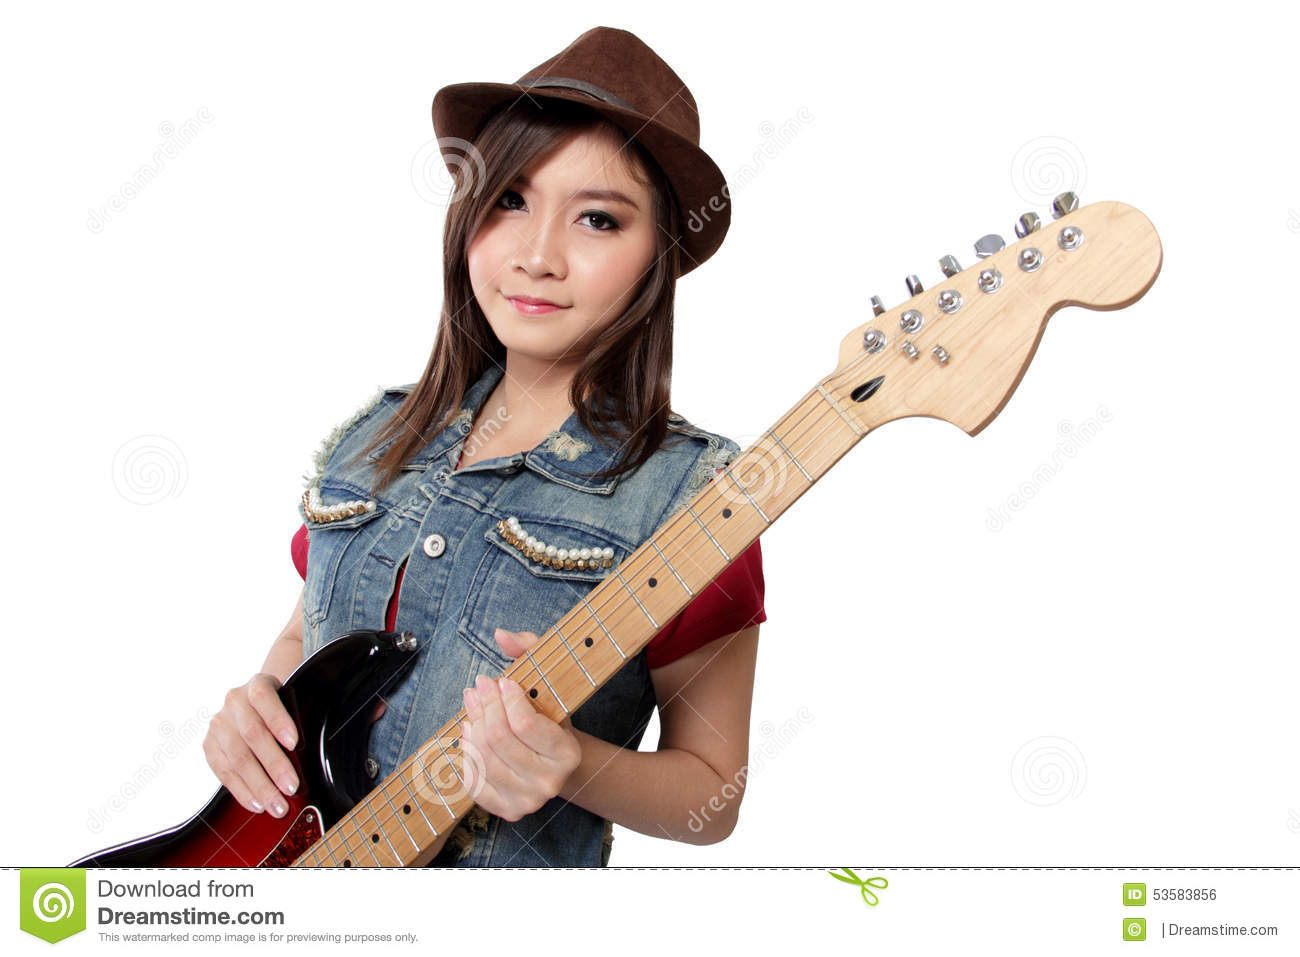 Seems excellent Asian punk rock girl was